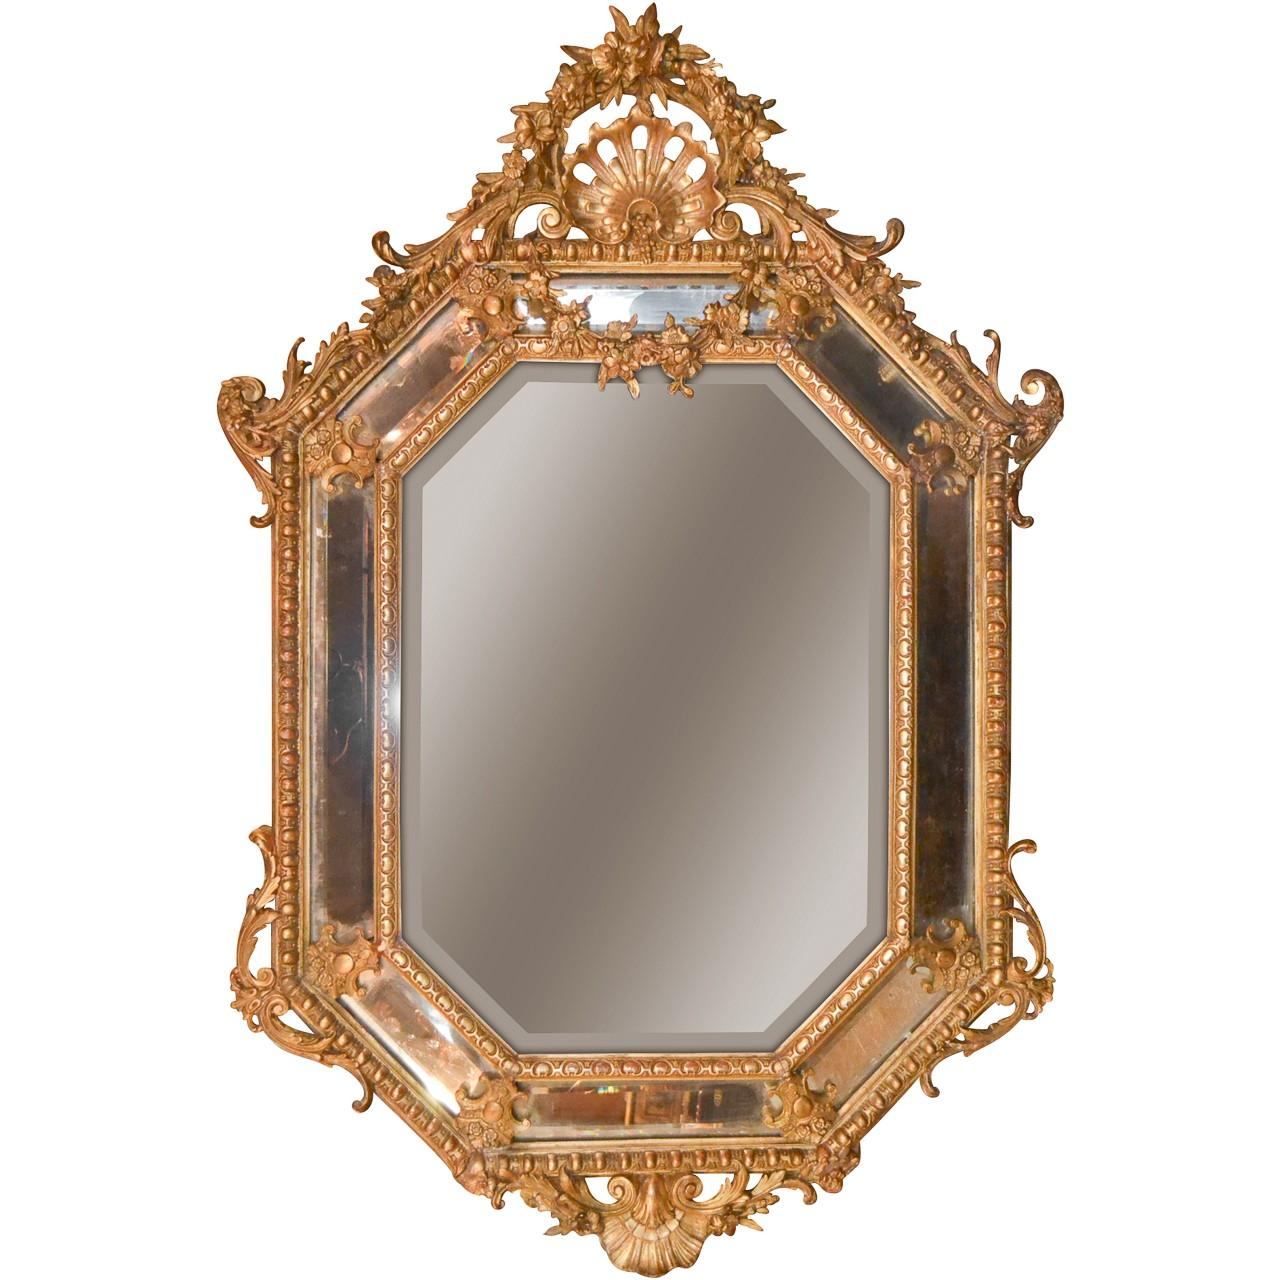 19th Century French Louis XV Cushion Mirror